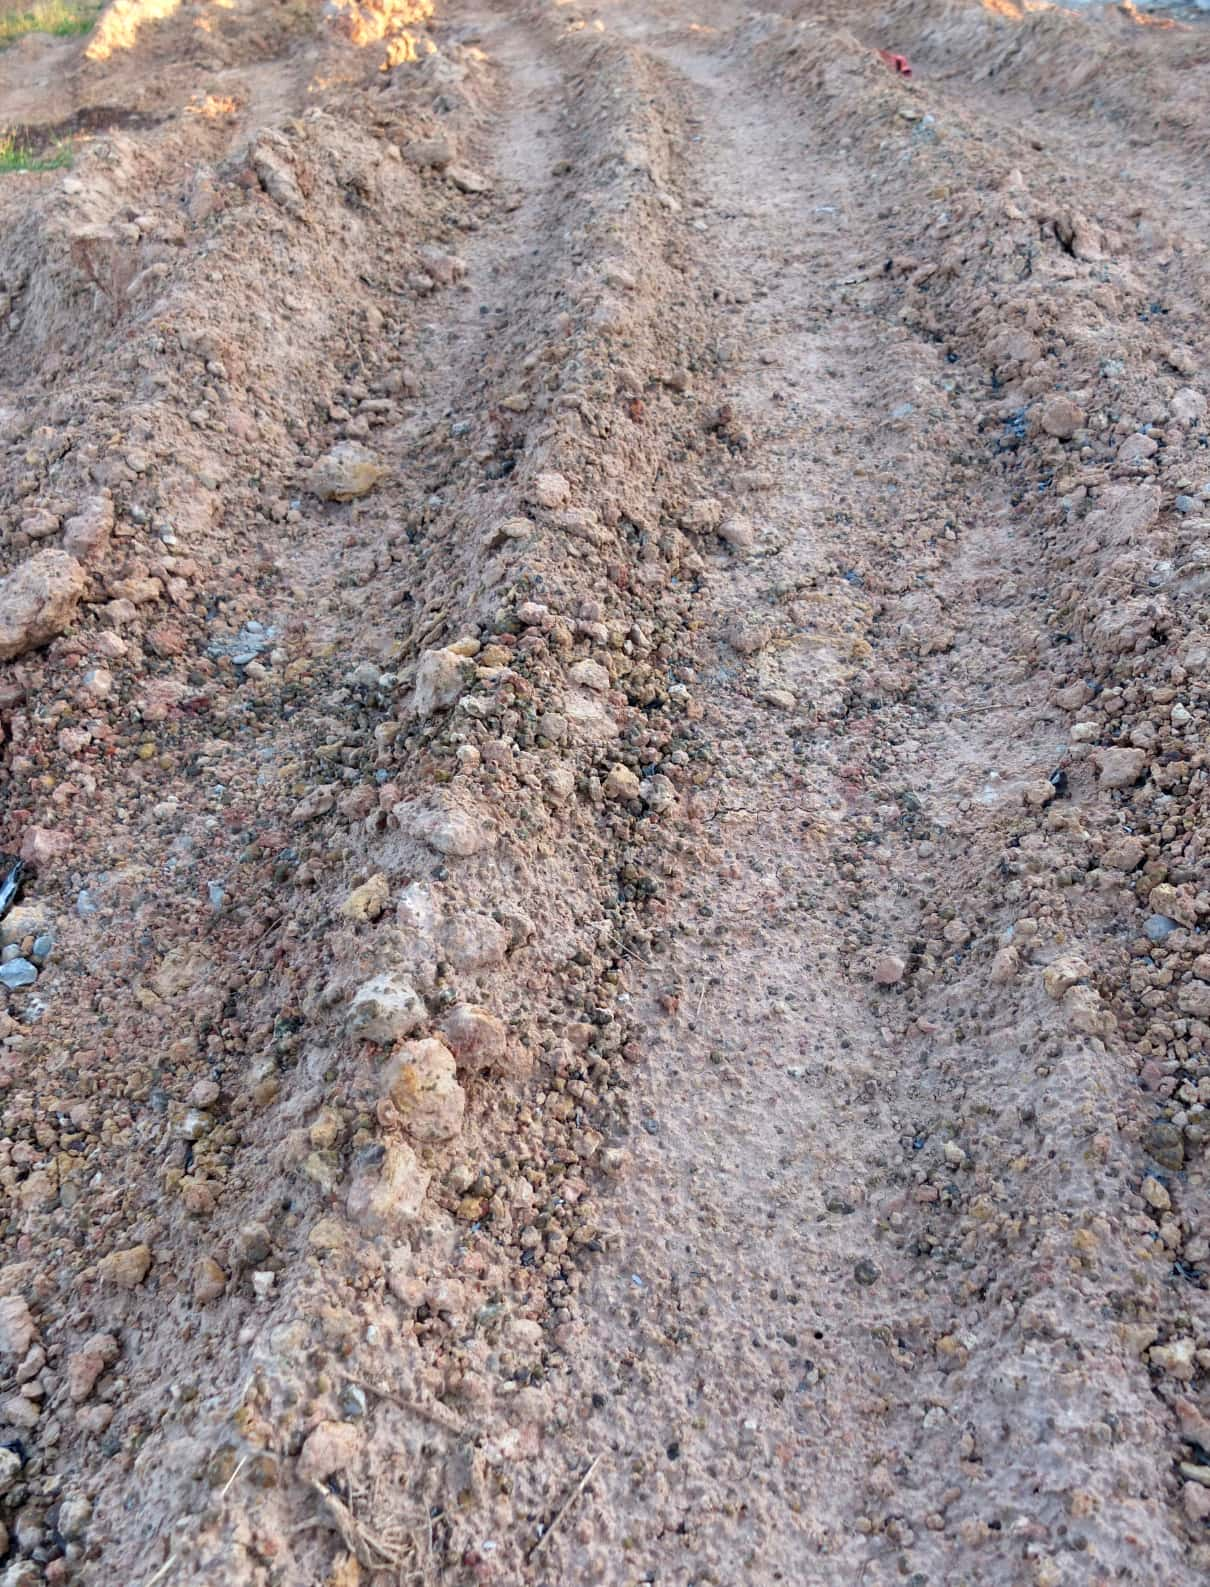 Wheel track in laterite soil excavation site, texture